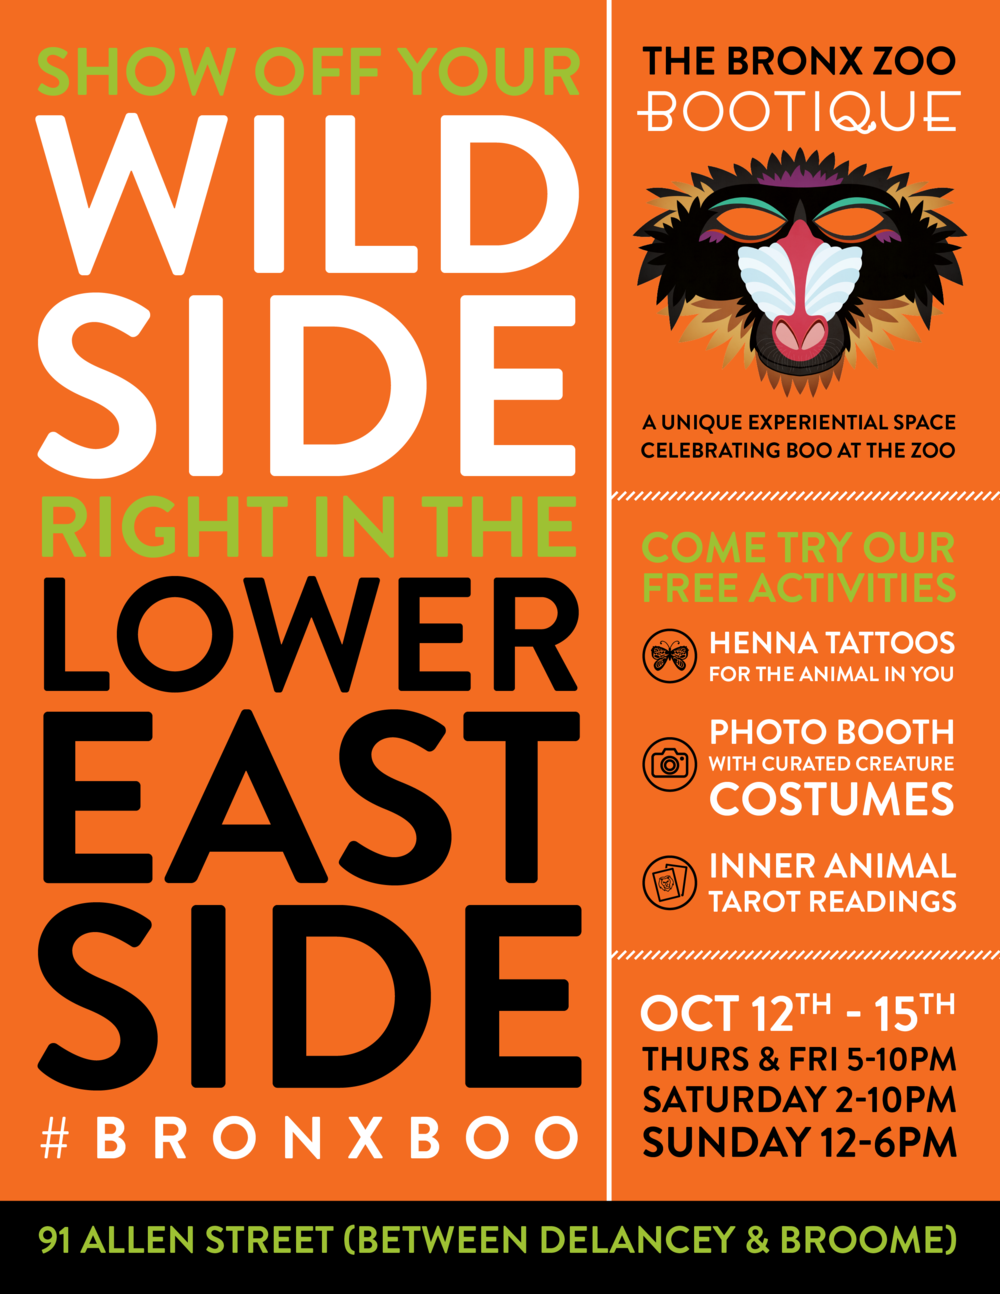 Bronx Zoo - Bootique - We took the magic of Boo At The Zoo and brought it to Manhattan's trendy Lower East Side, opening the Bronx Zoo's first ever experimental pop-up space. We called it the Bronx Zoo Bootique.Nominated:Shorty Awards